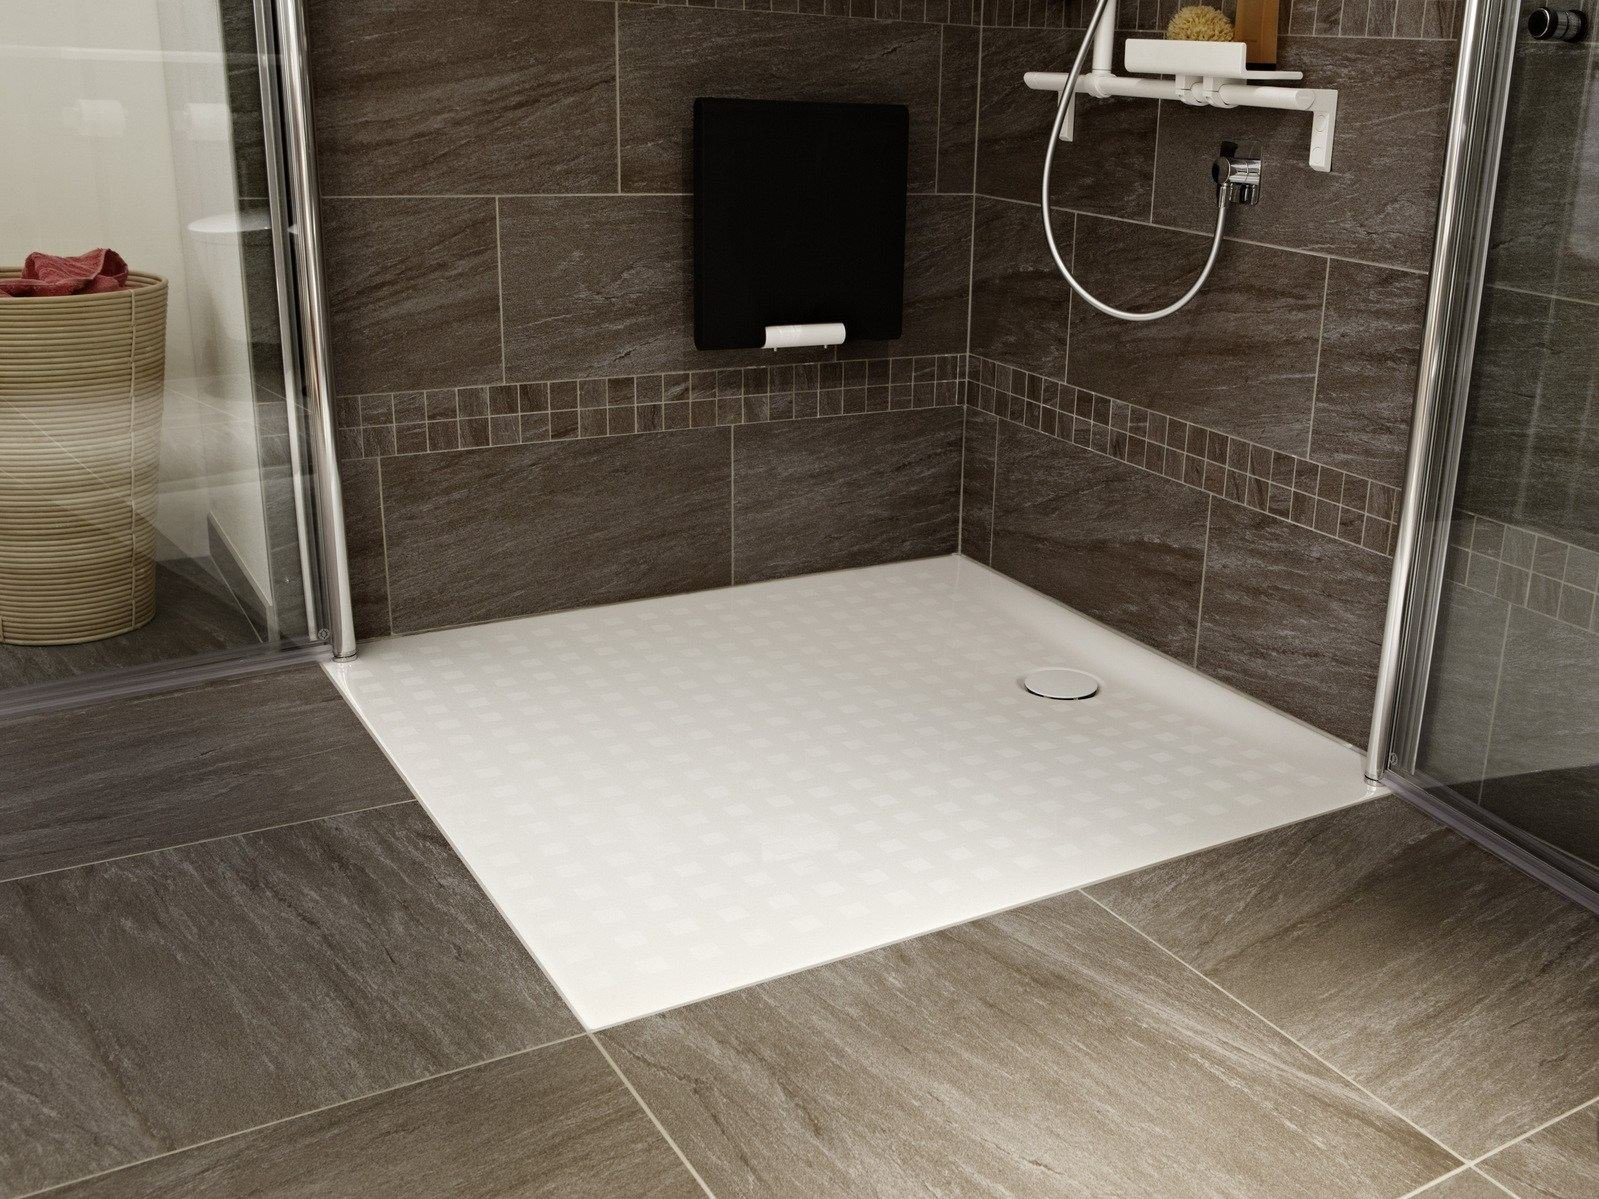 bettefloor side rectangular shower tray by bette design. Black Bedroom Furniture Sets. Home Design Ideas